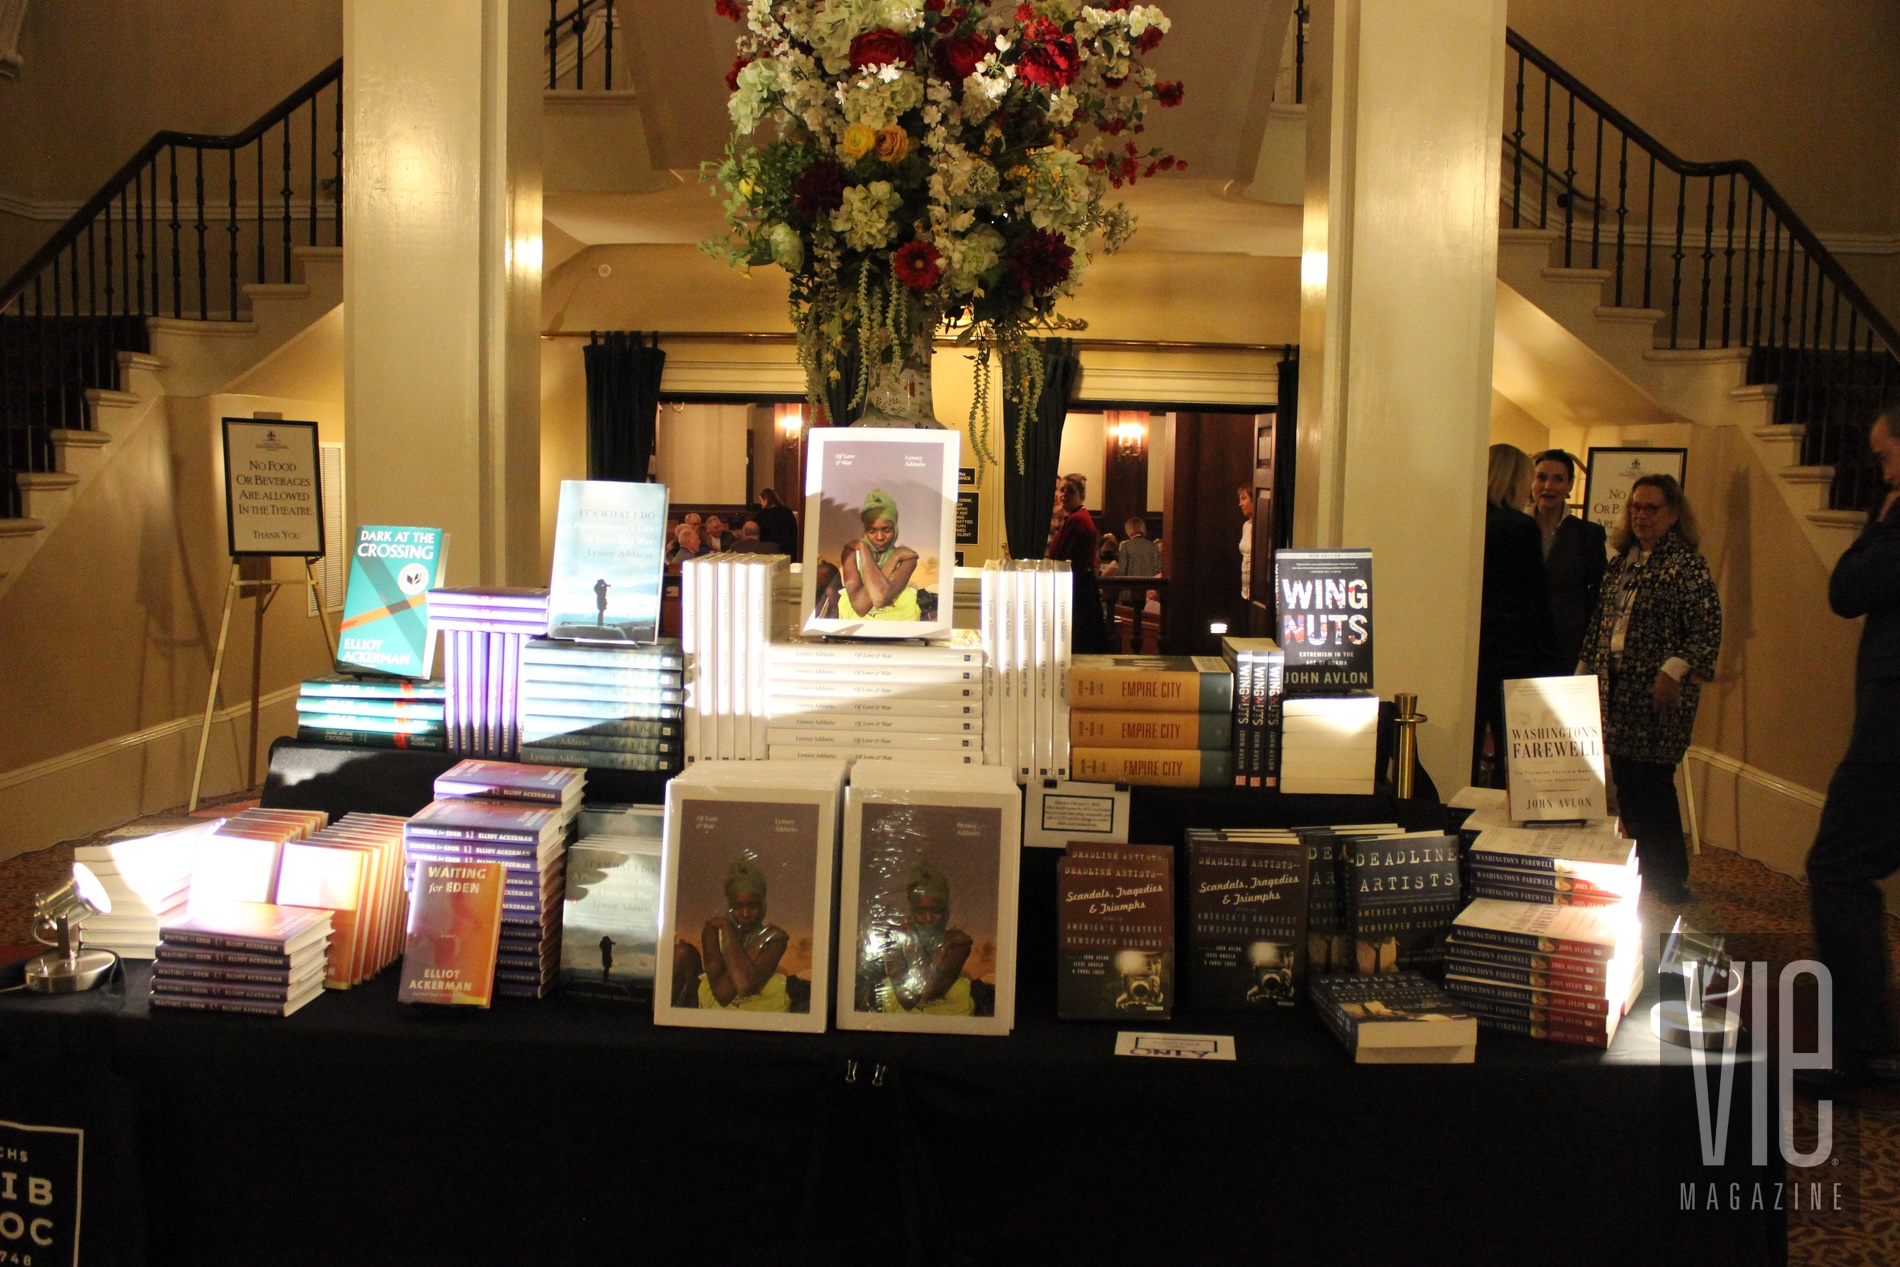 Books on display for purchase at Dock Street Theatre during Charleston to Charleston Literary Festival 2018 VIE magazine